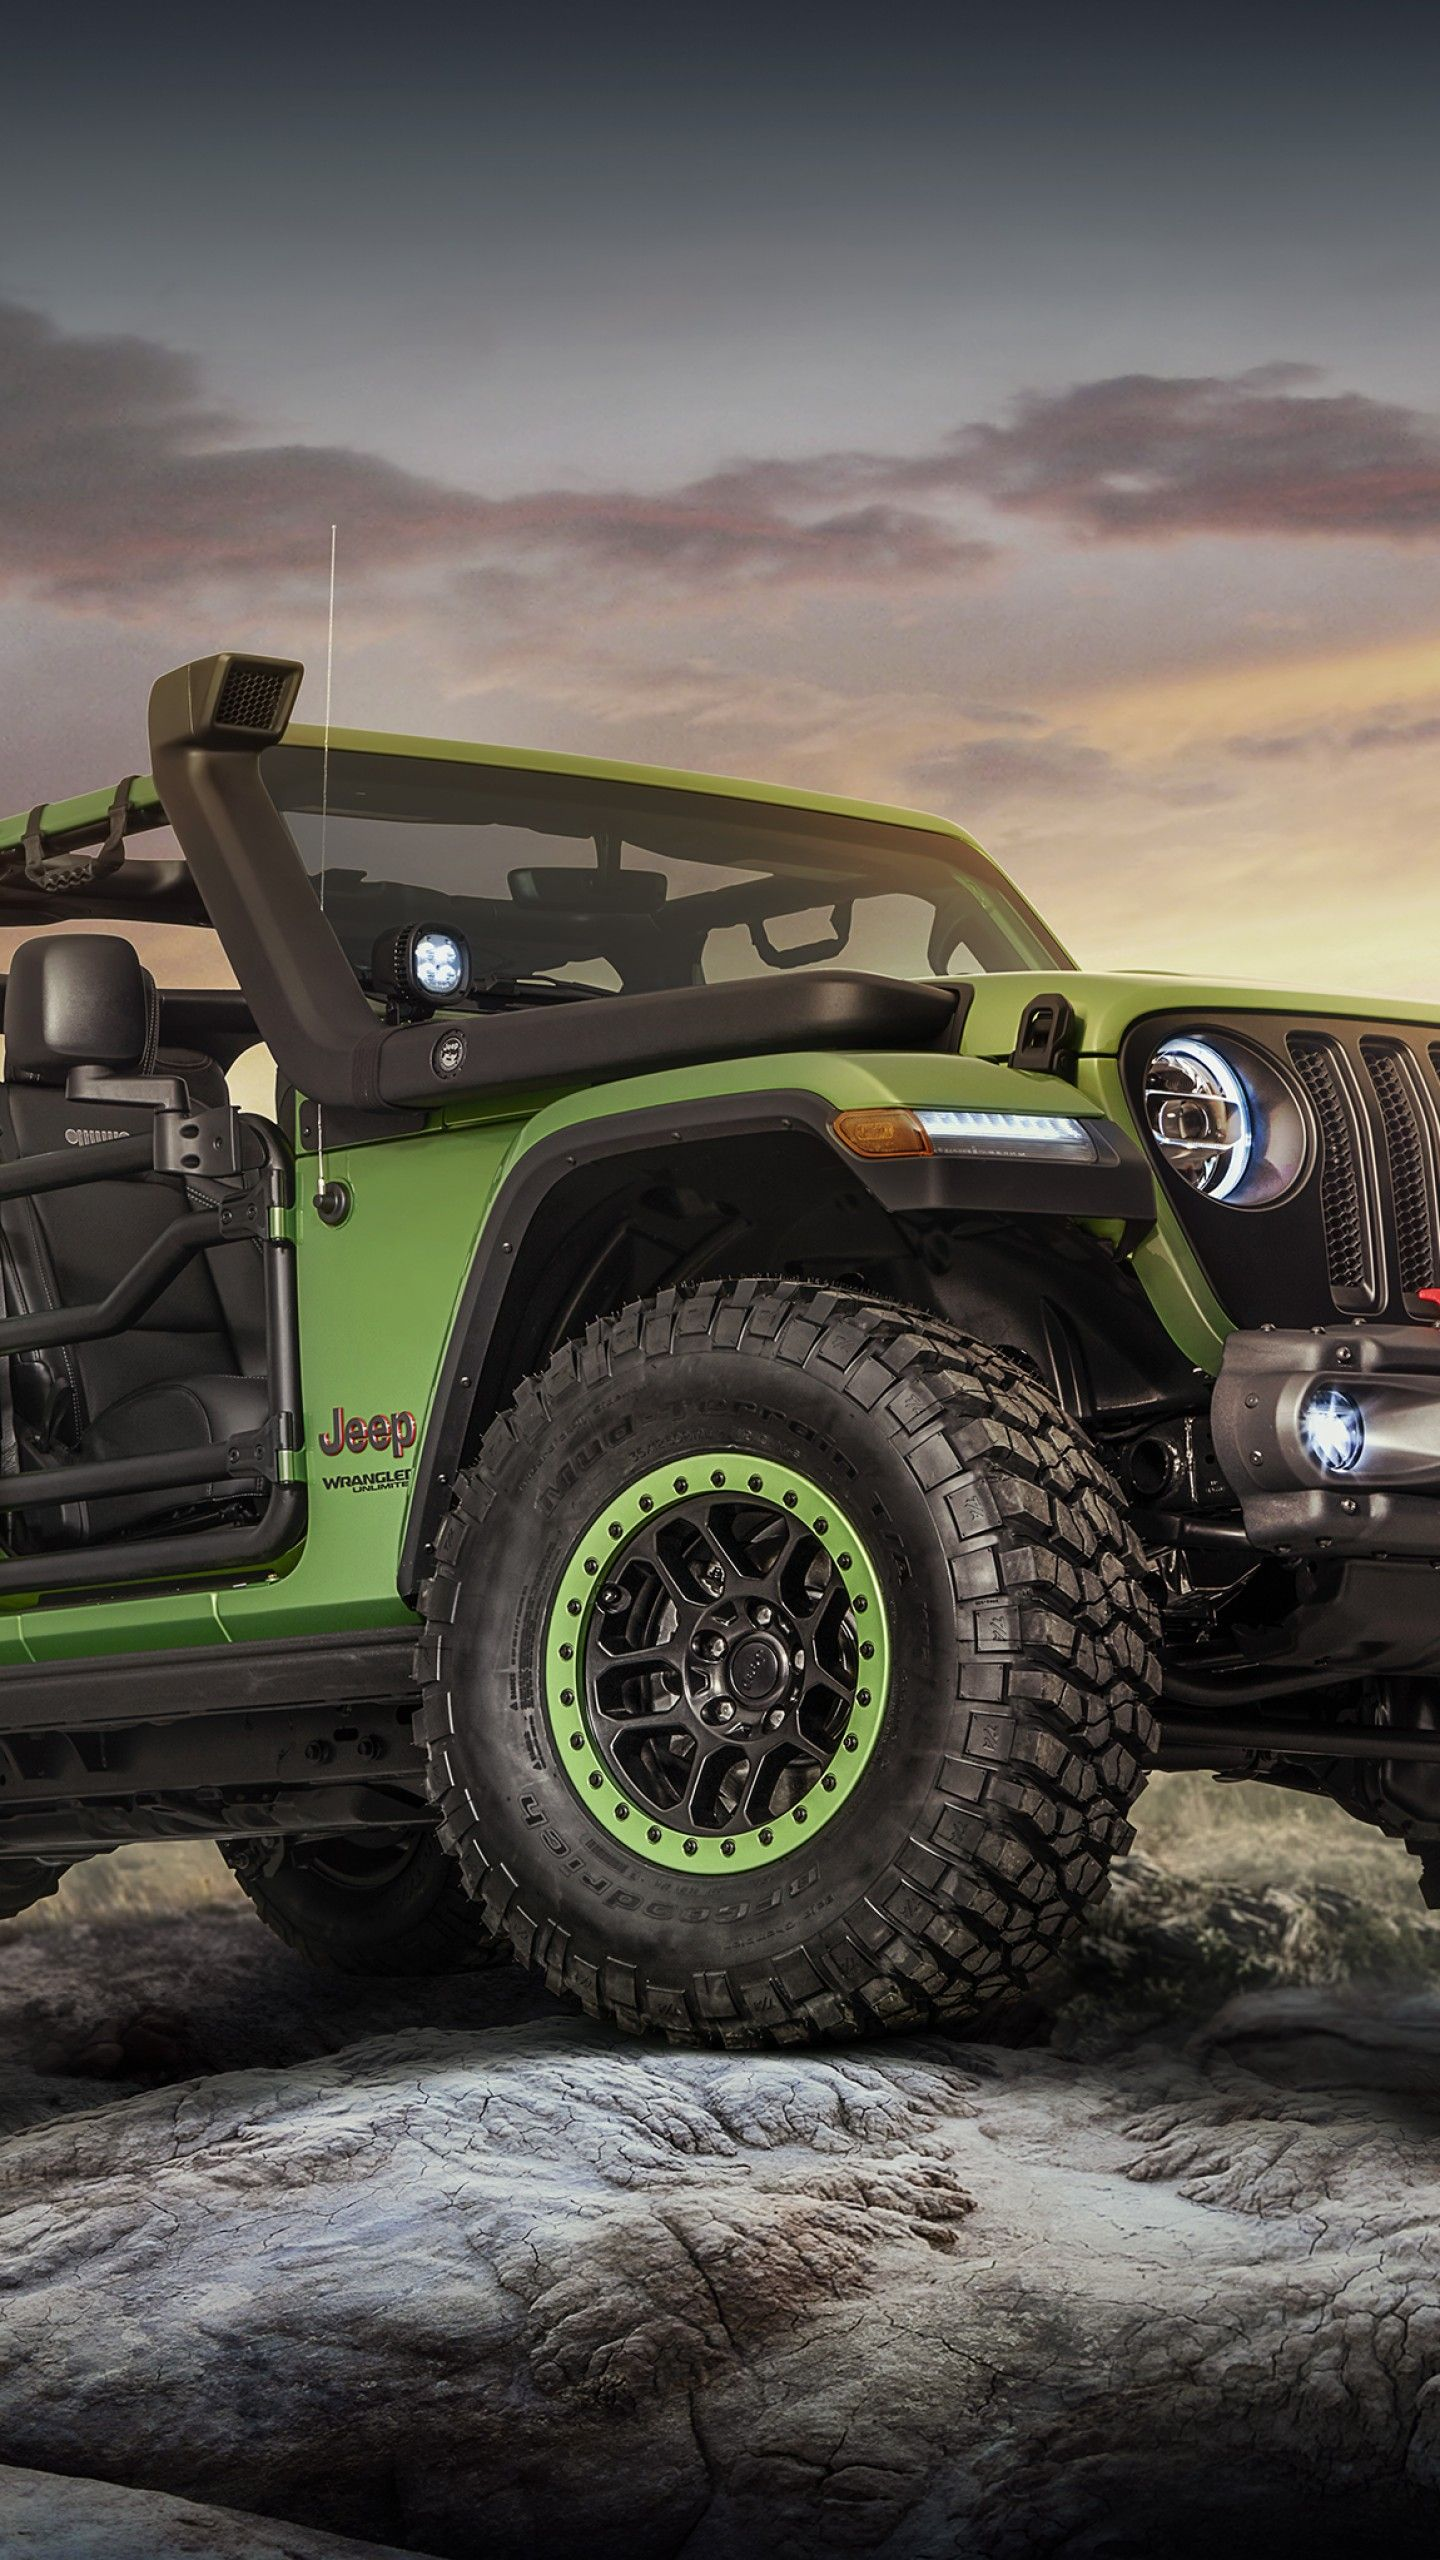 Wallpaper Jeep Wrangler Unlimited Rubicon 2018 Wallpaper Jeep Wrangler Unlimited Ru Jeep Wrangler Unlimited